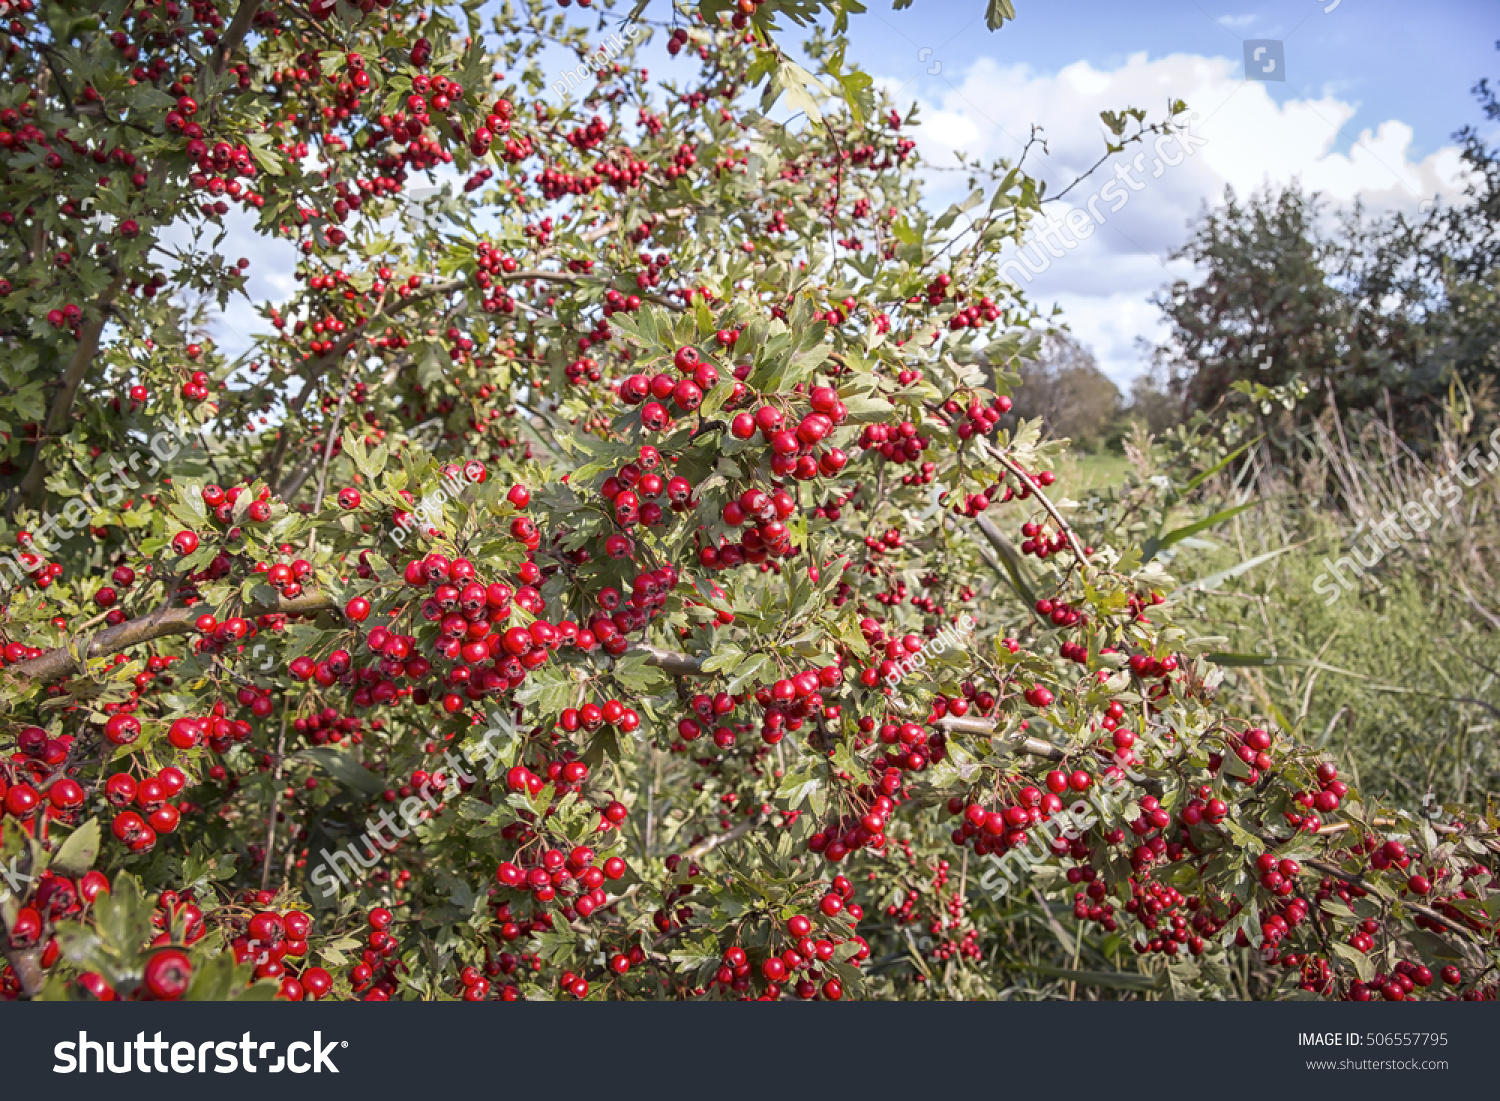 Royalty Free A Lush White Thorn Bush With Red Fruits 506557795